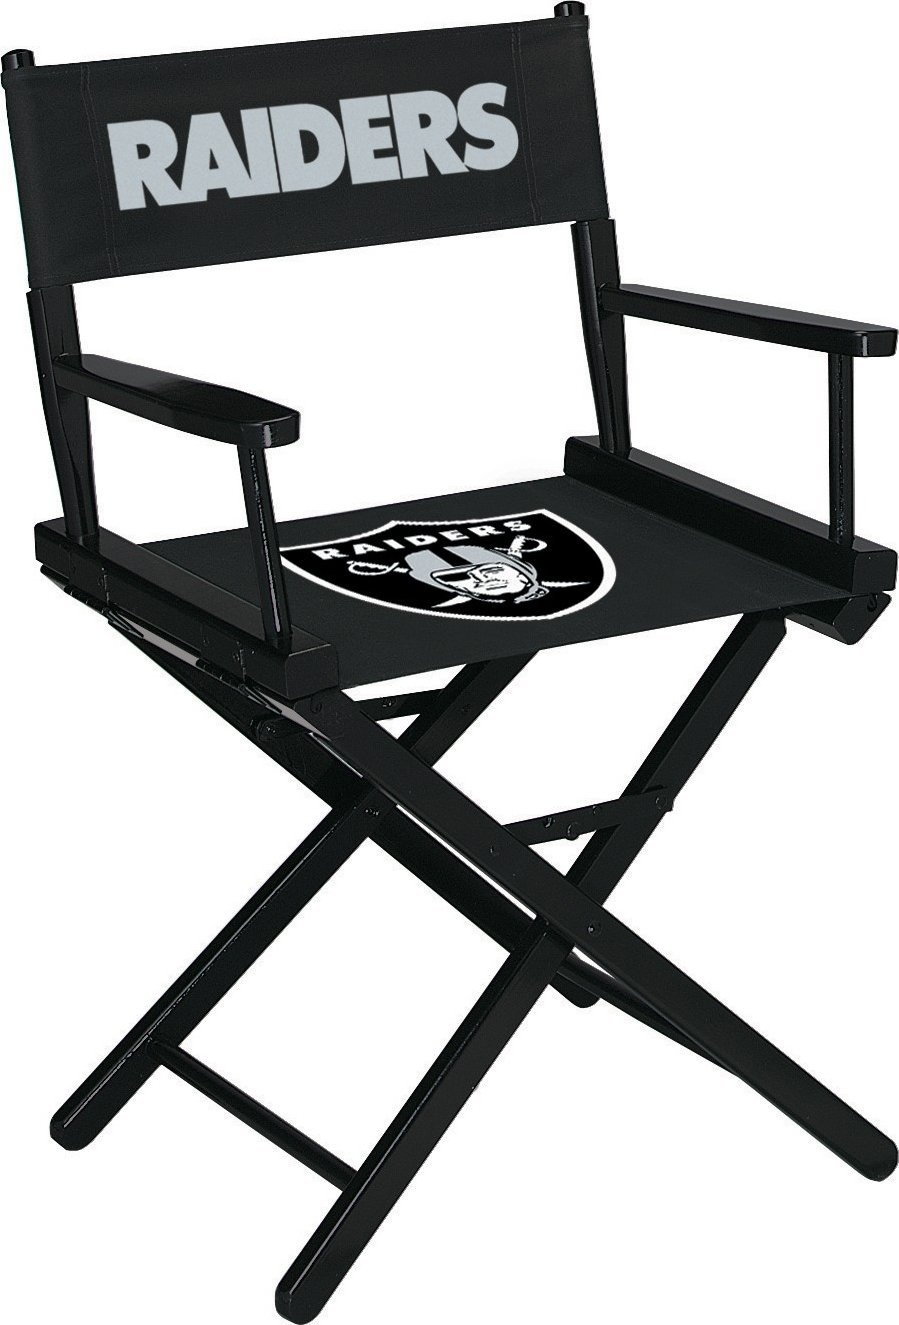 Imperial Officially Licensed NFL Merchandise: Directors Chair (Short, Table Height), Oakland Raiders